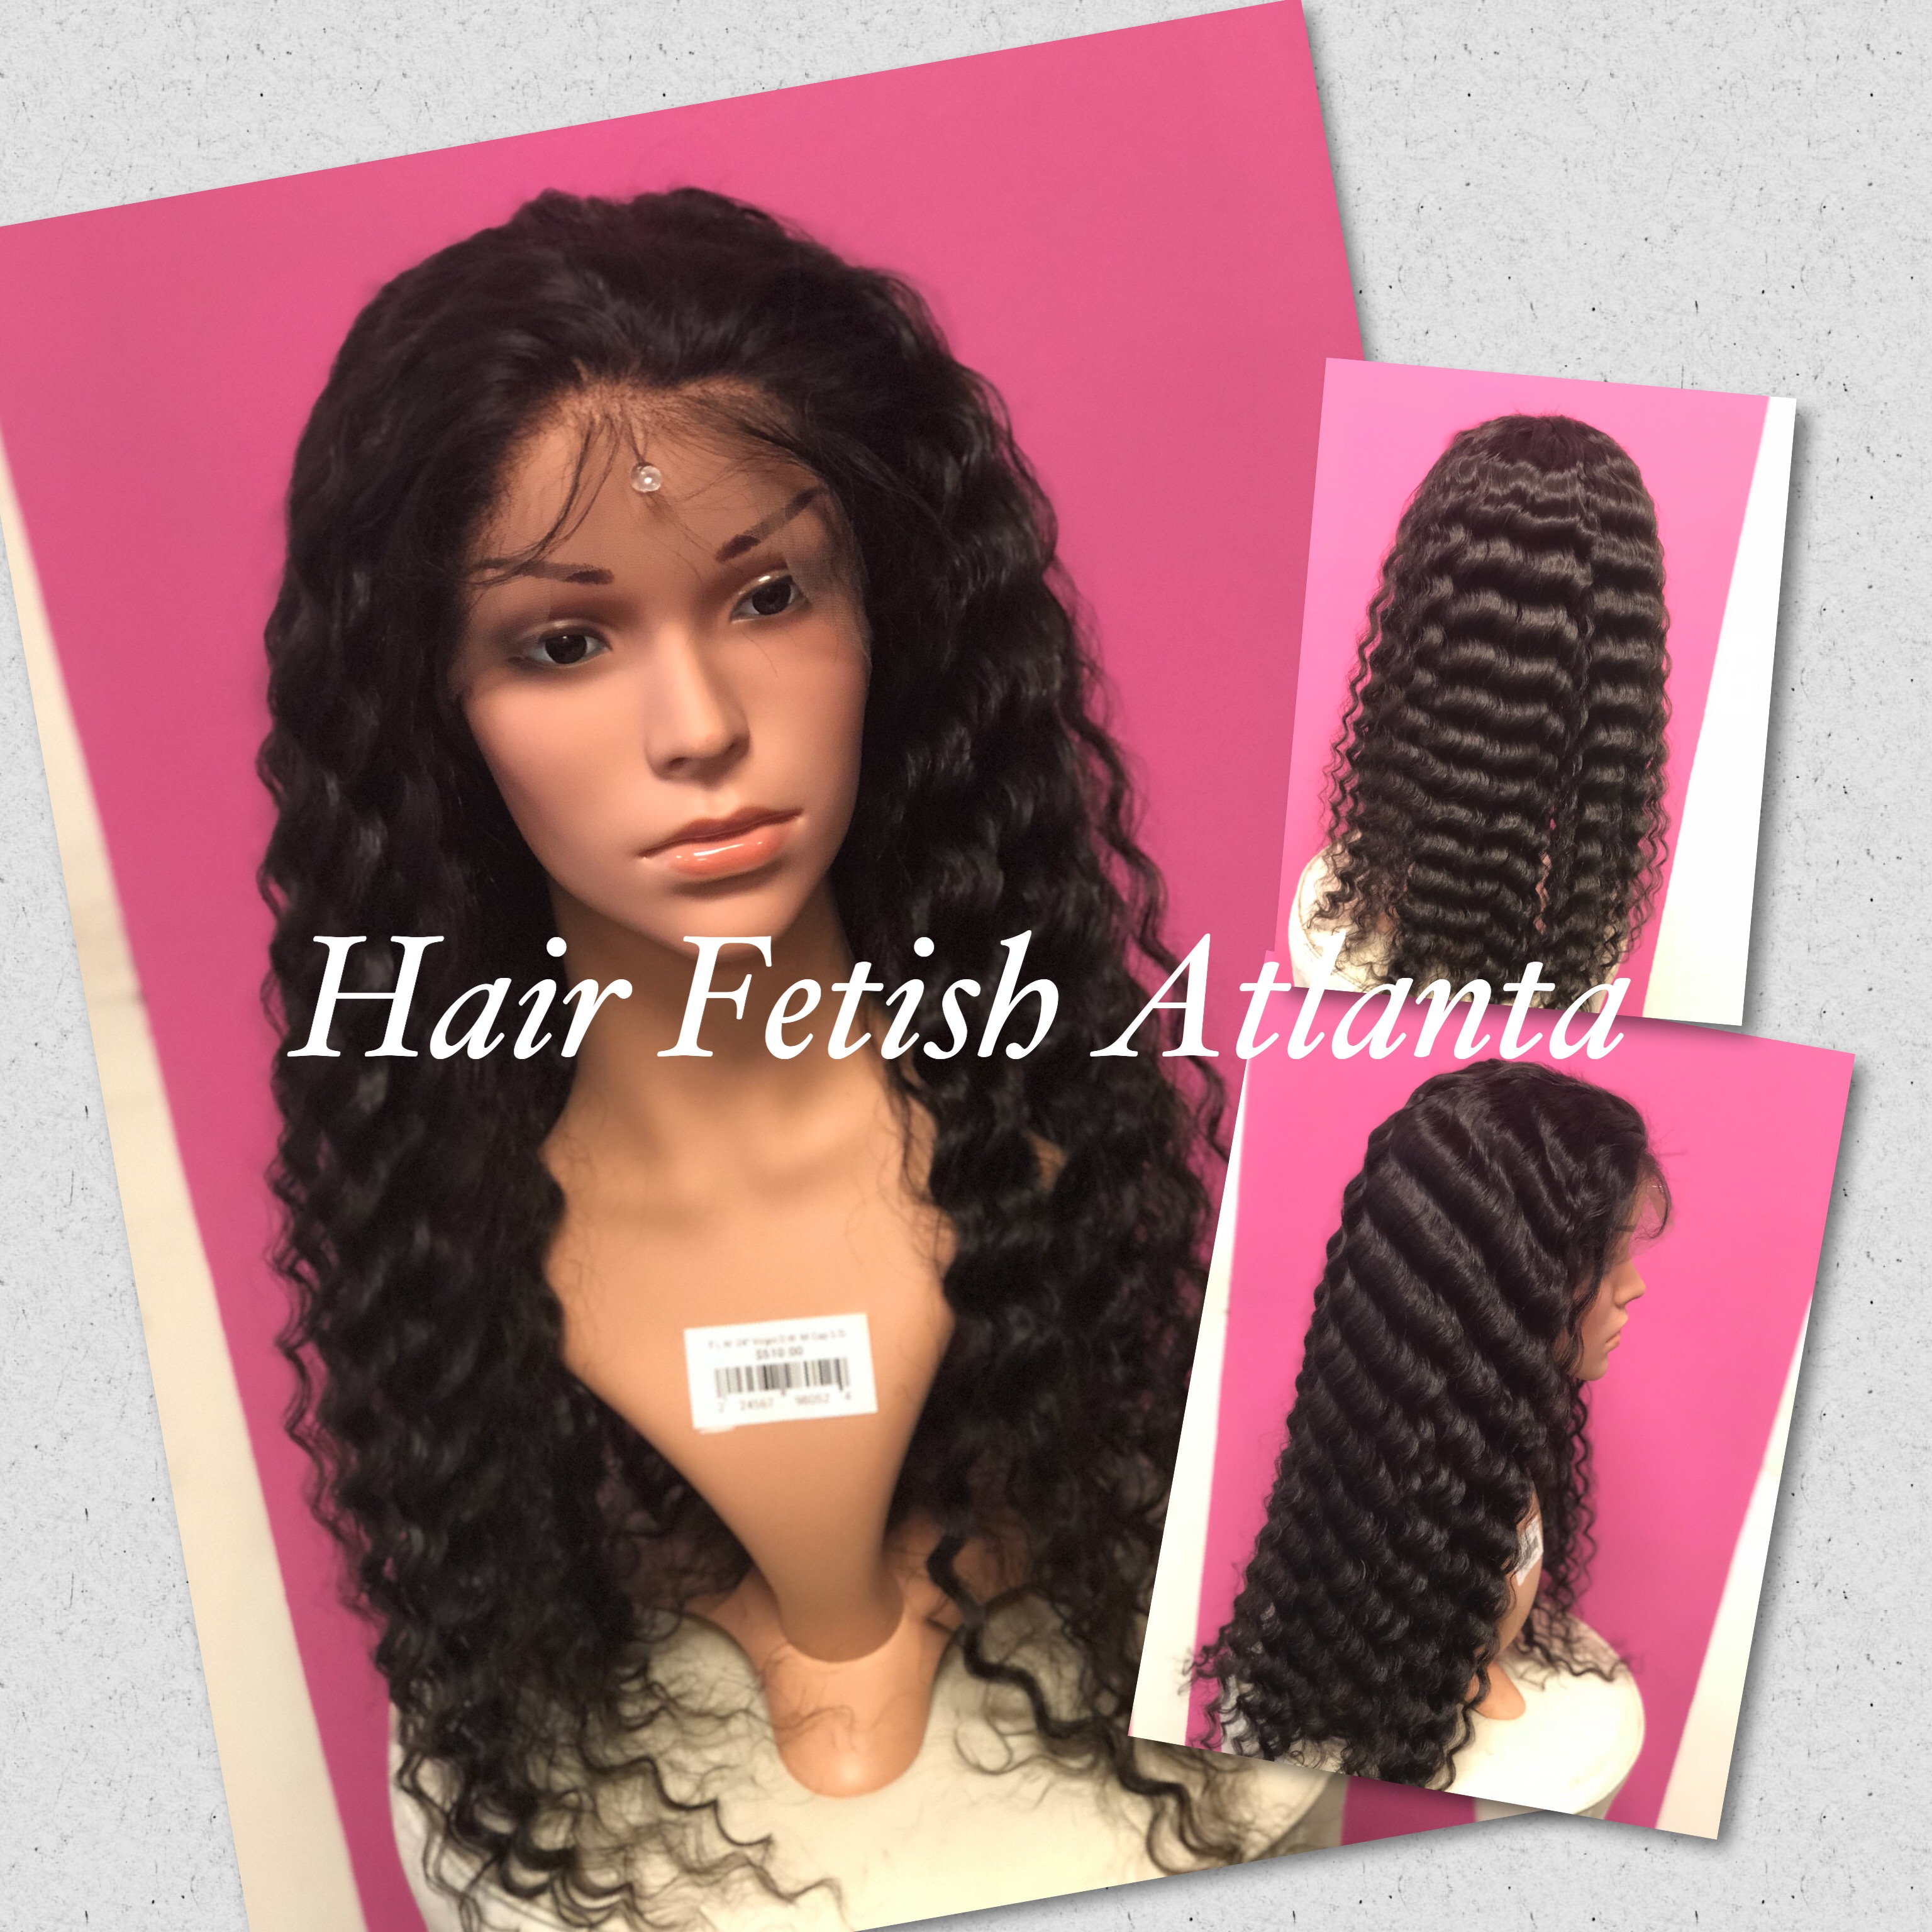 Full Lace Wig Install $150 - Hair Fetish